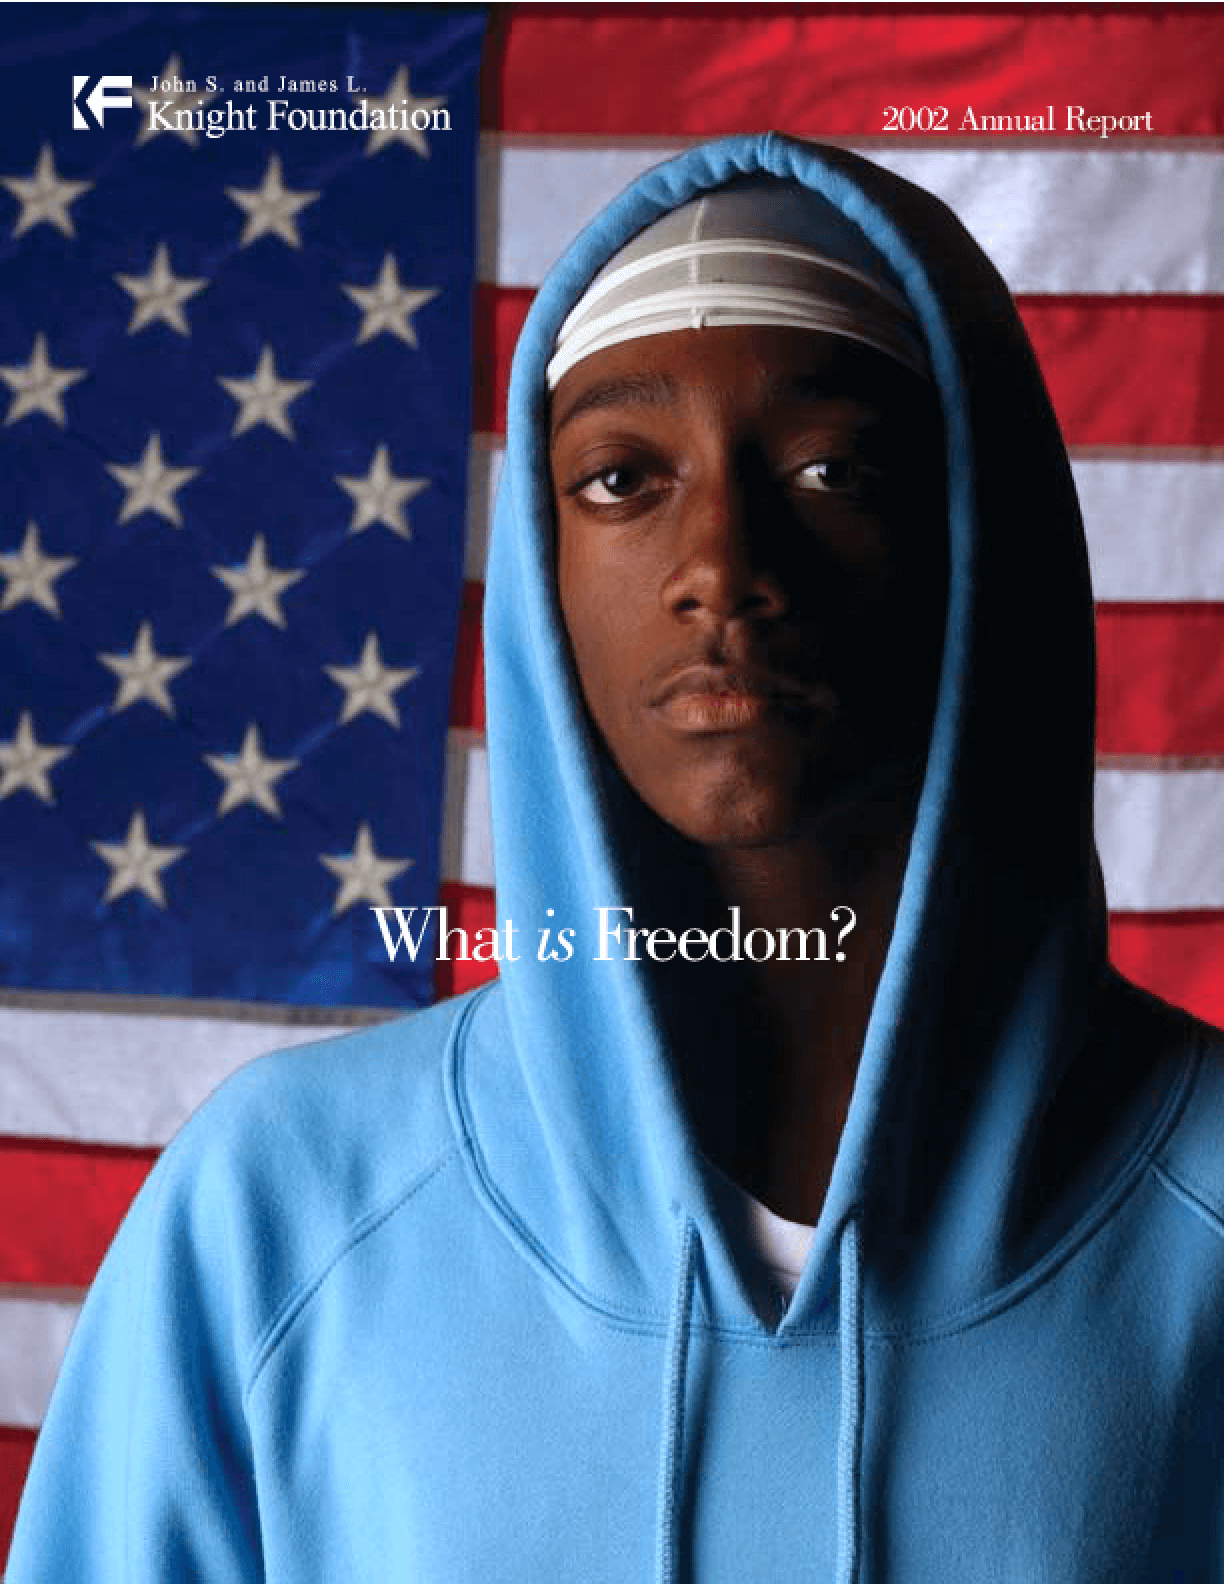 John S. and James L. Knight Foundation - 2002 Annual Report: What is Freedom?